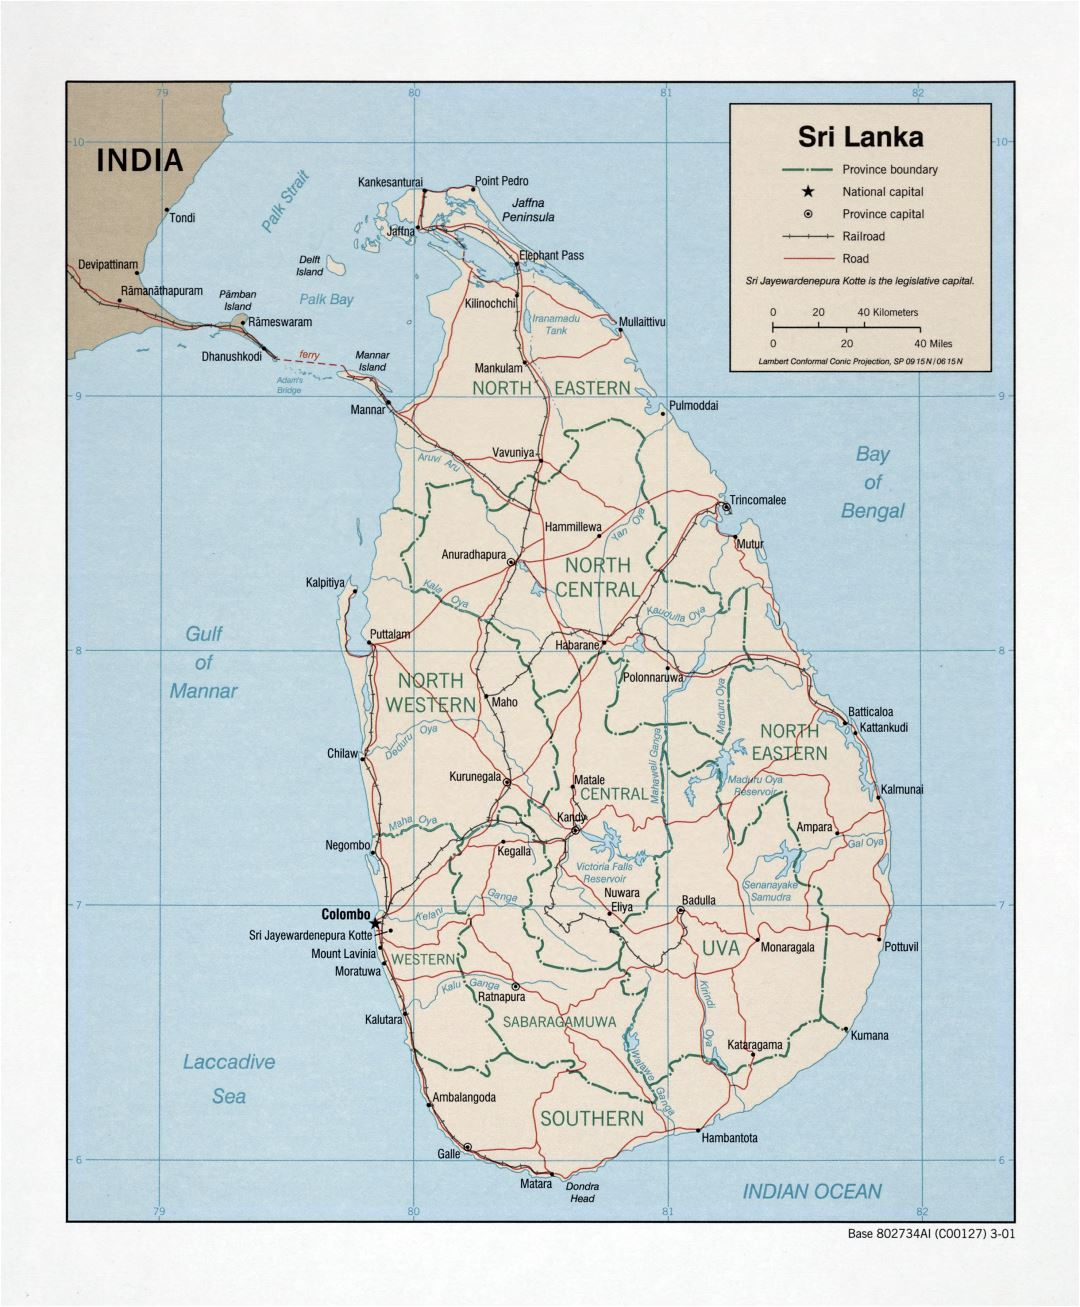 Large detailed political and administrative map of Sri Lanka with roads, railroads and major cities - 2001